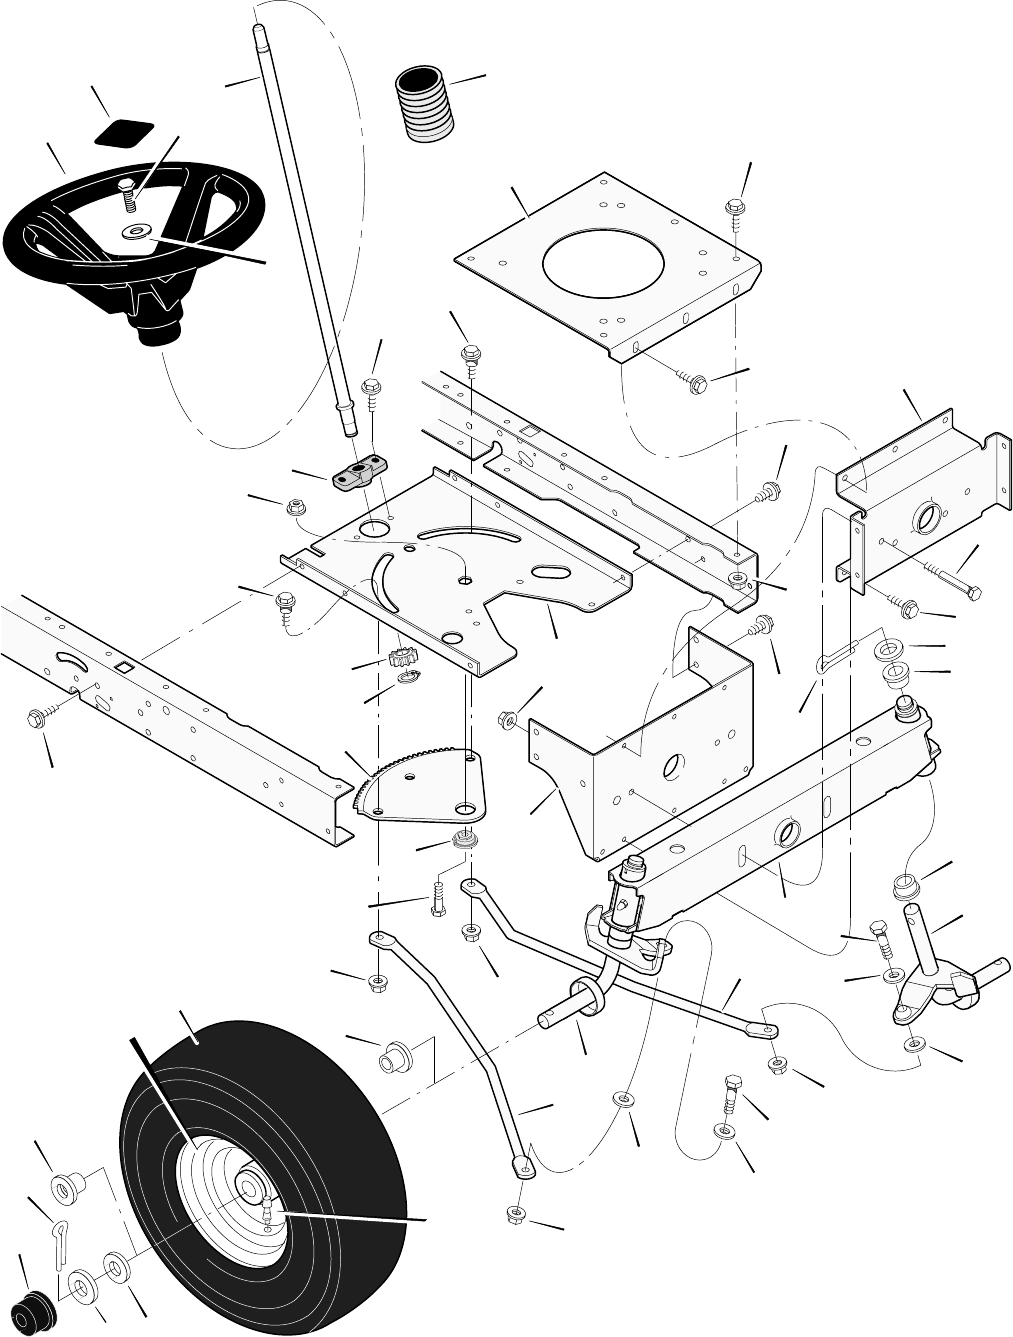 Page 22 of Murray Lawn Mower 405001x78B User Guide